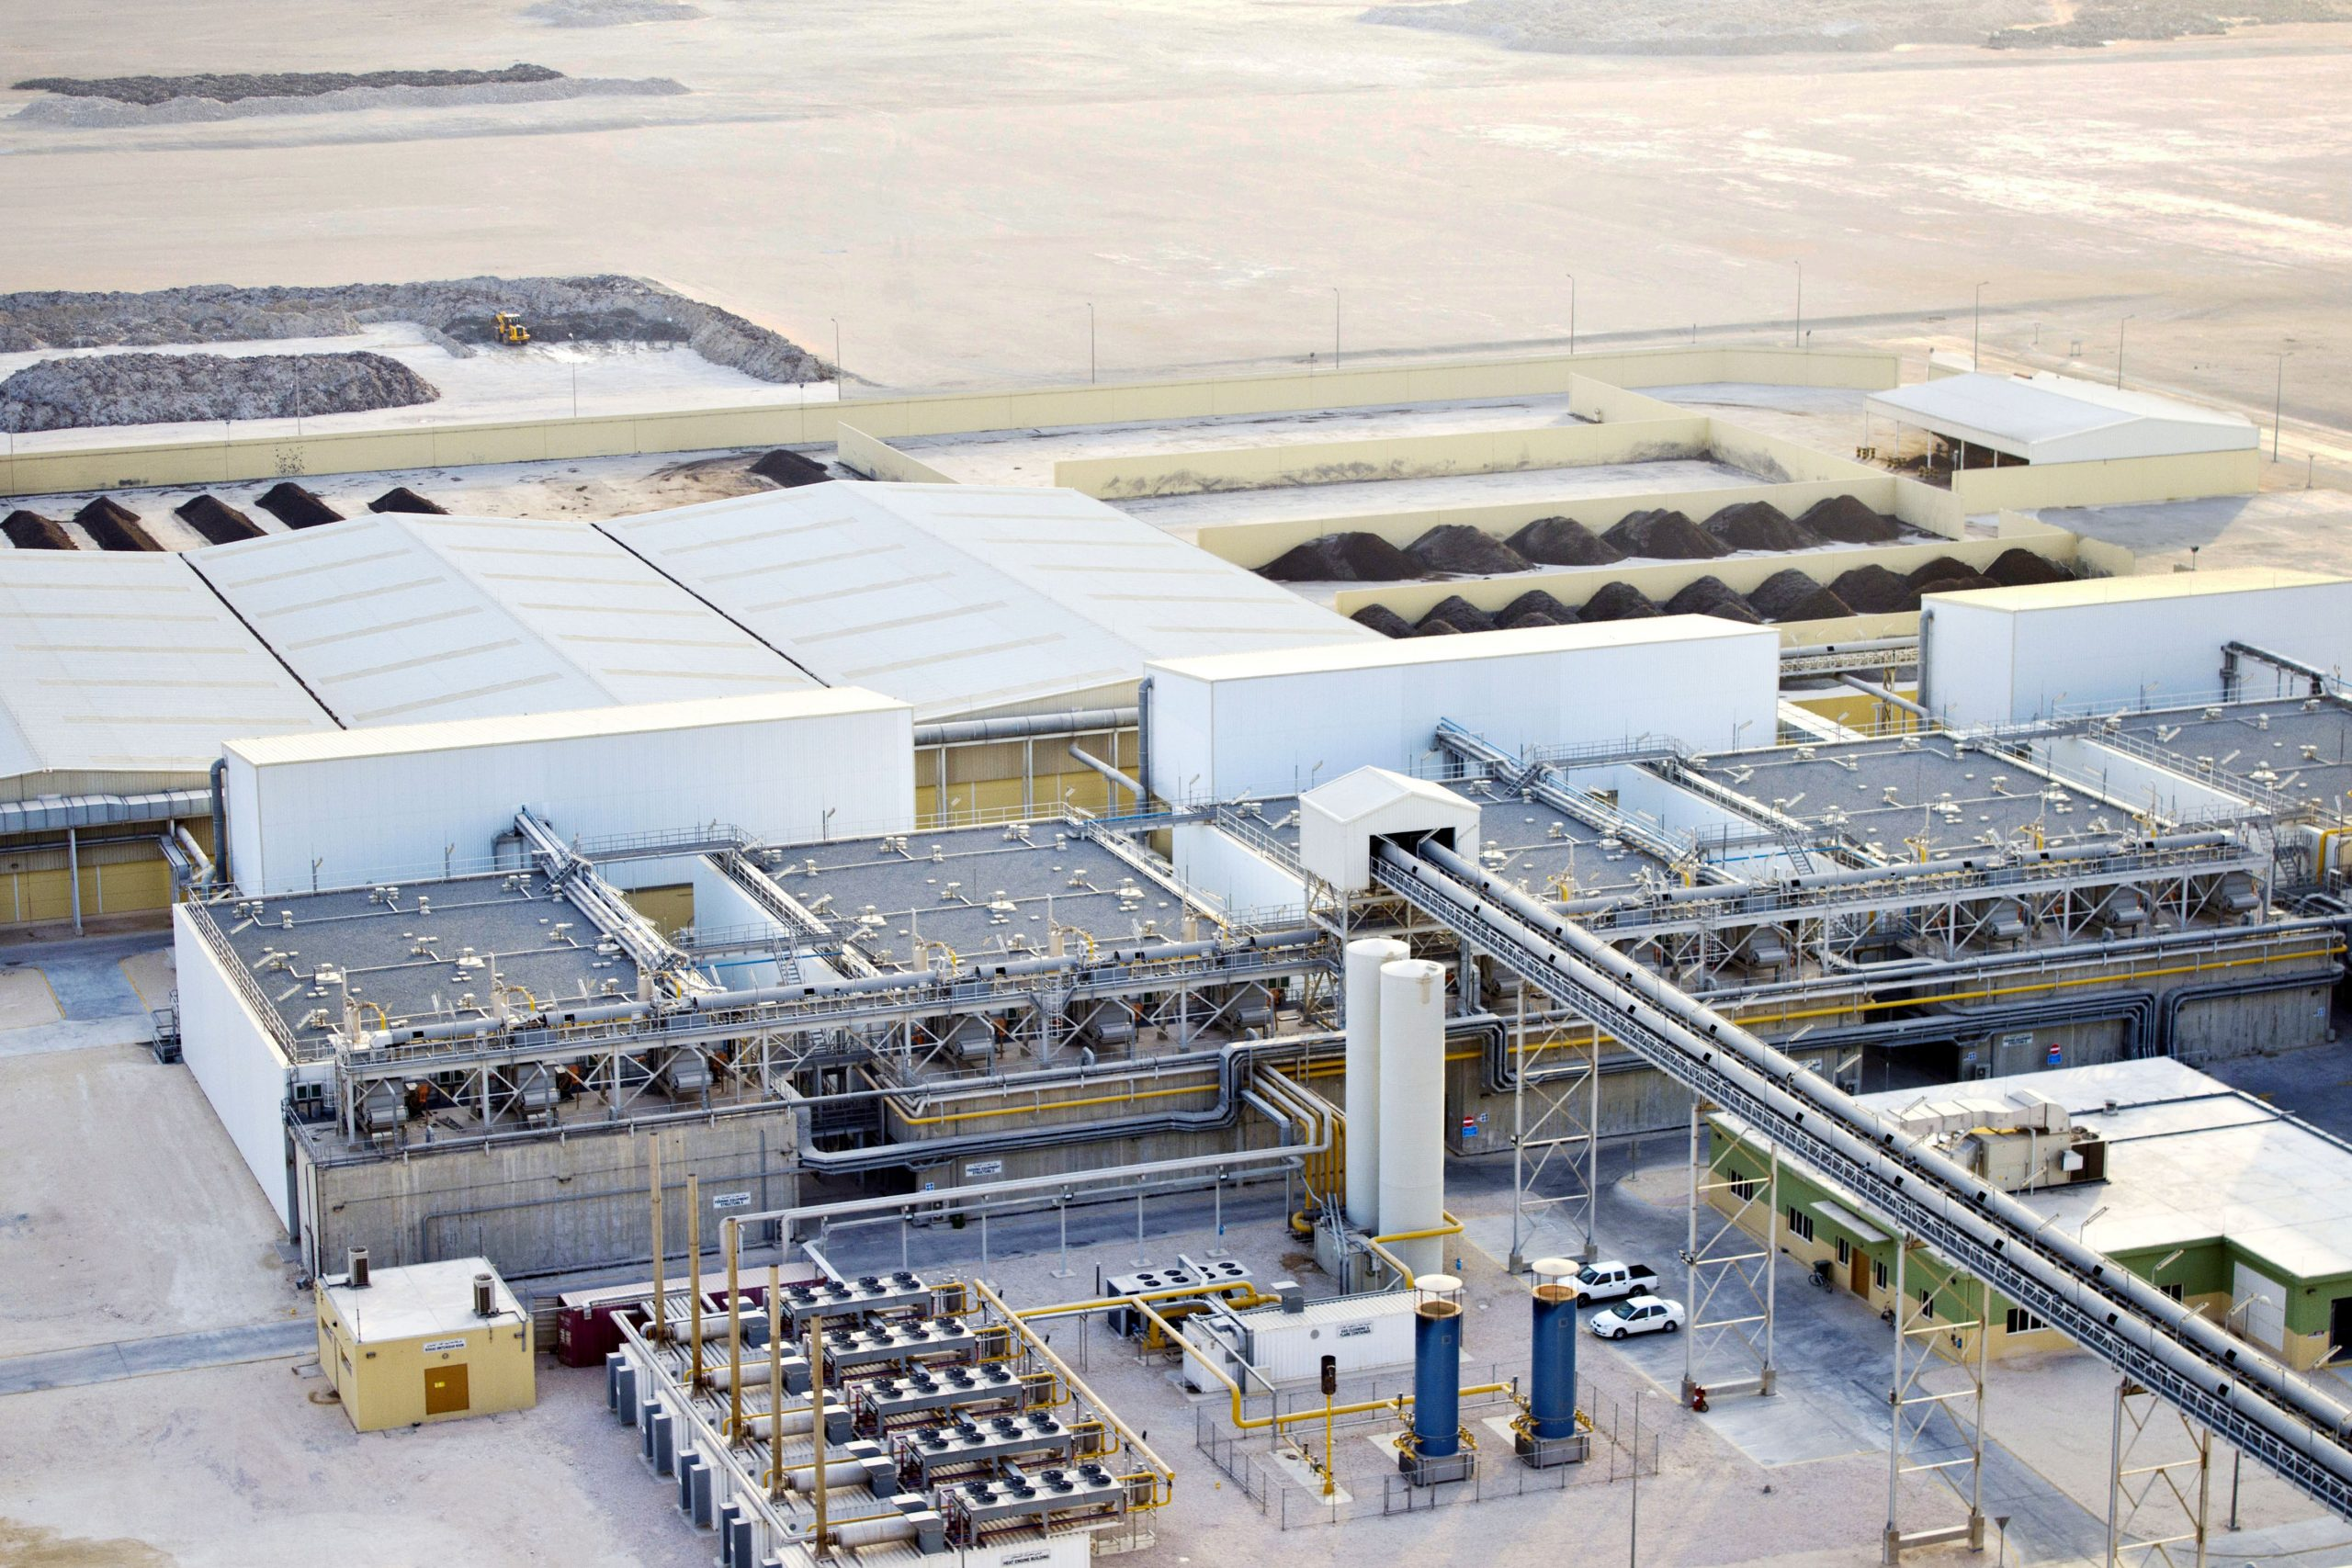 The largest: AD plant in Doha